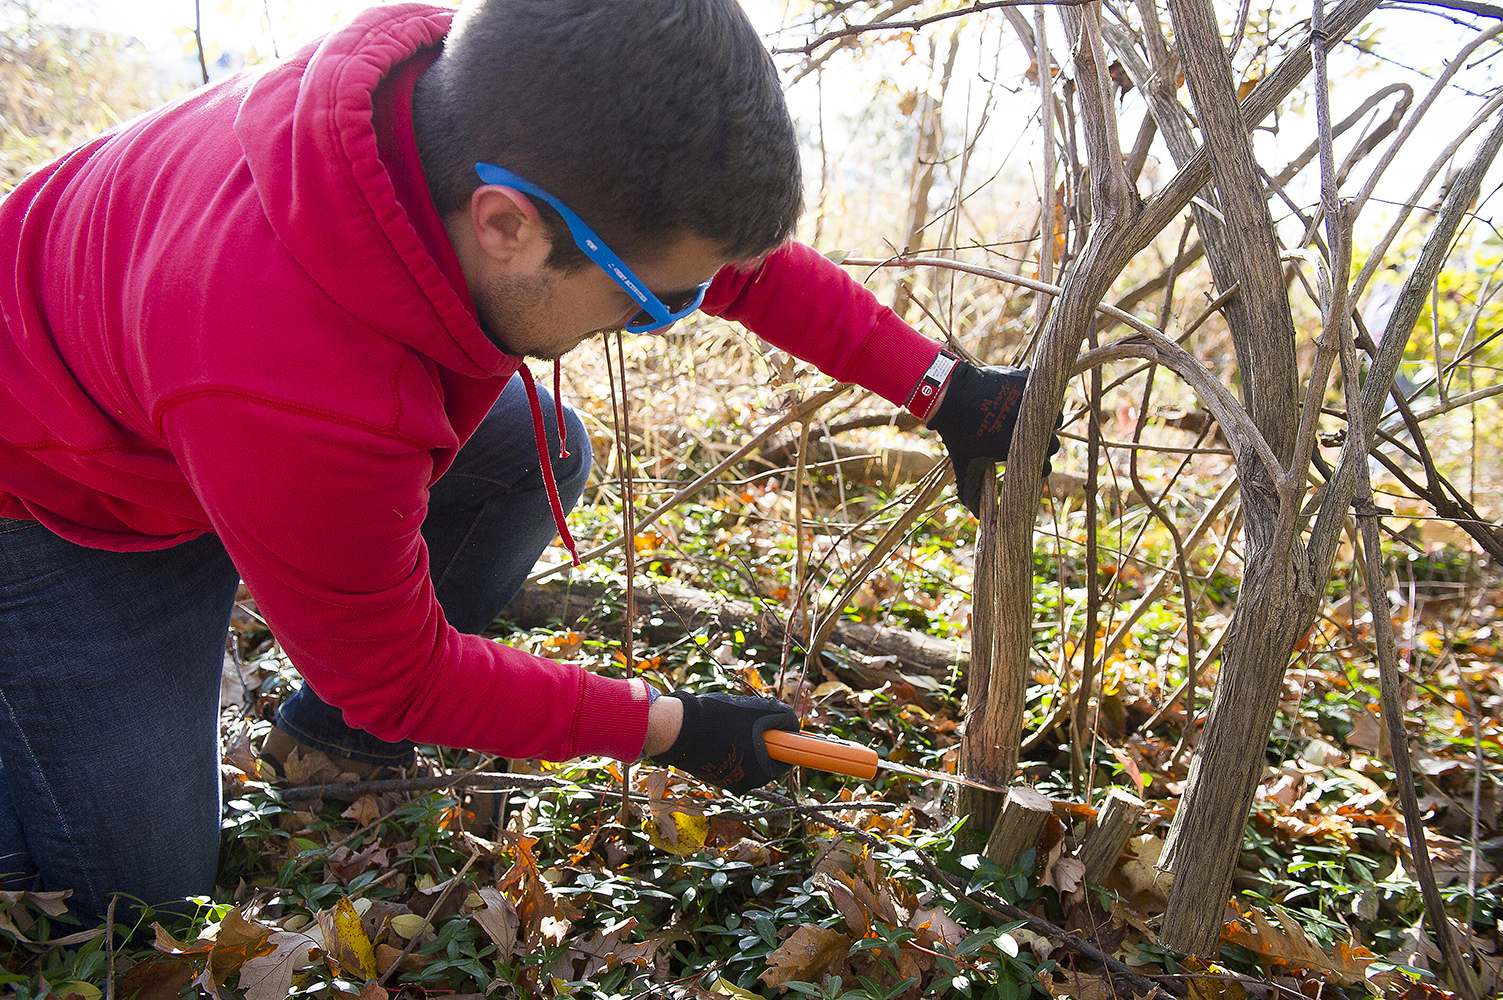 A youngster works to cut the base of a shrub